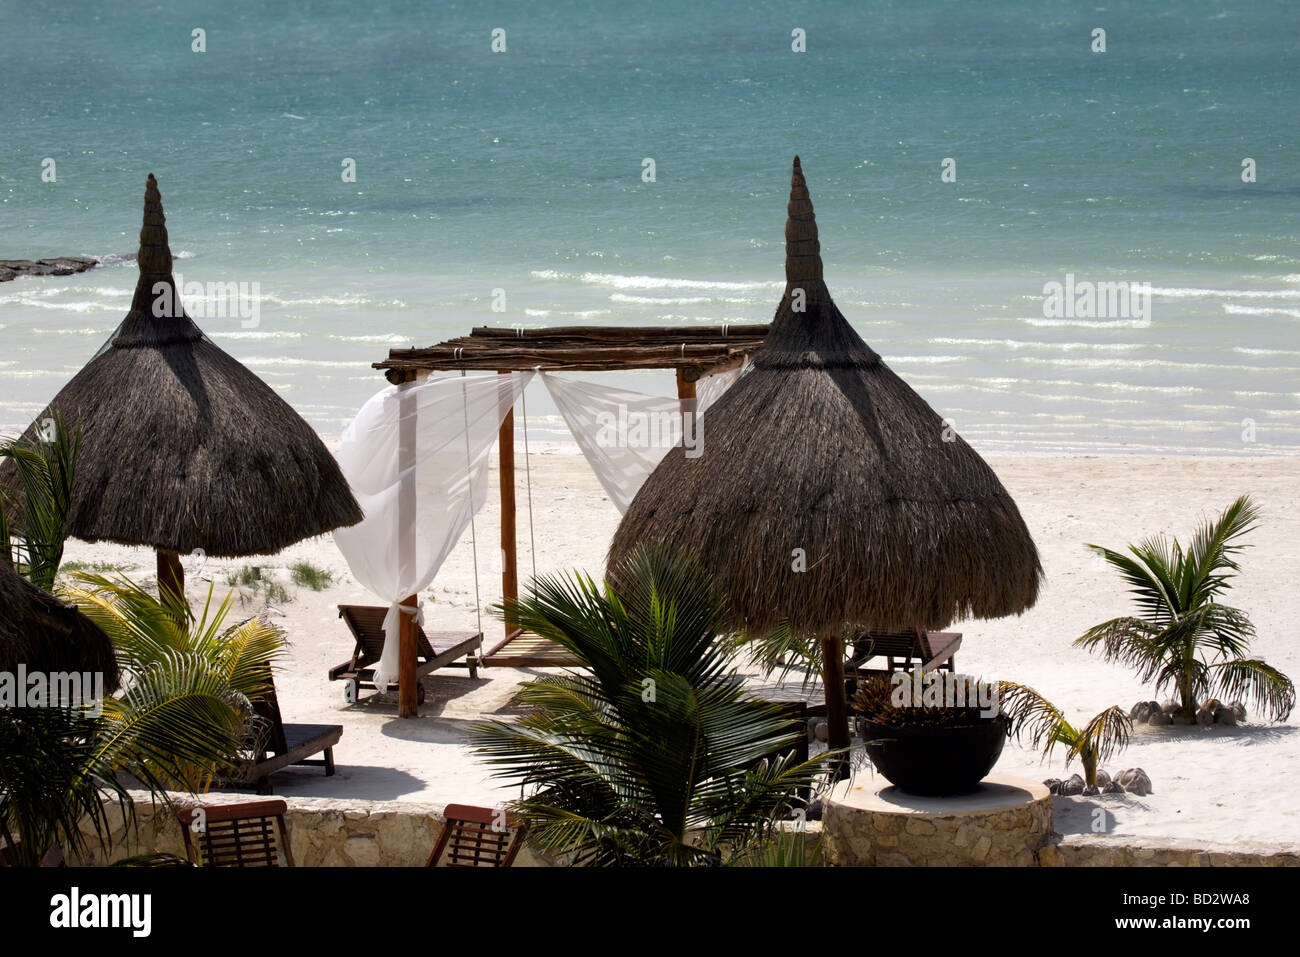 Parasols on the beach, Holbox Island, Quintana Roo, Yucatán Peninsula, Mexico, a unique Mexican destination - Stock Image